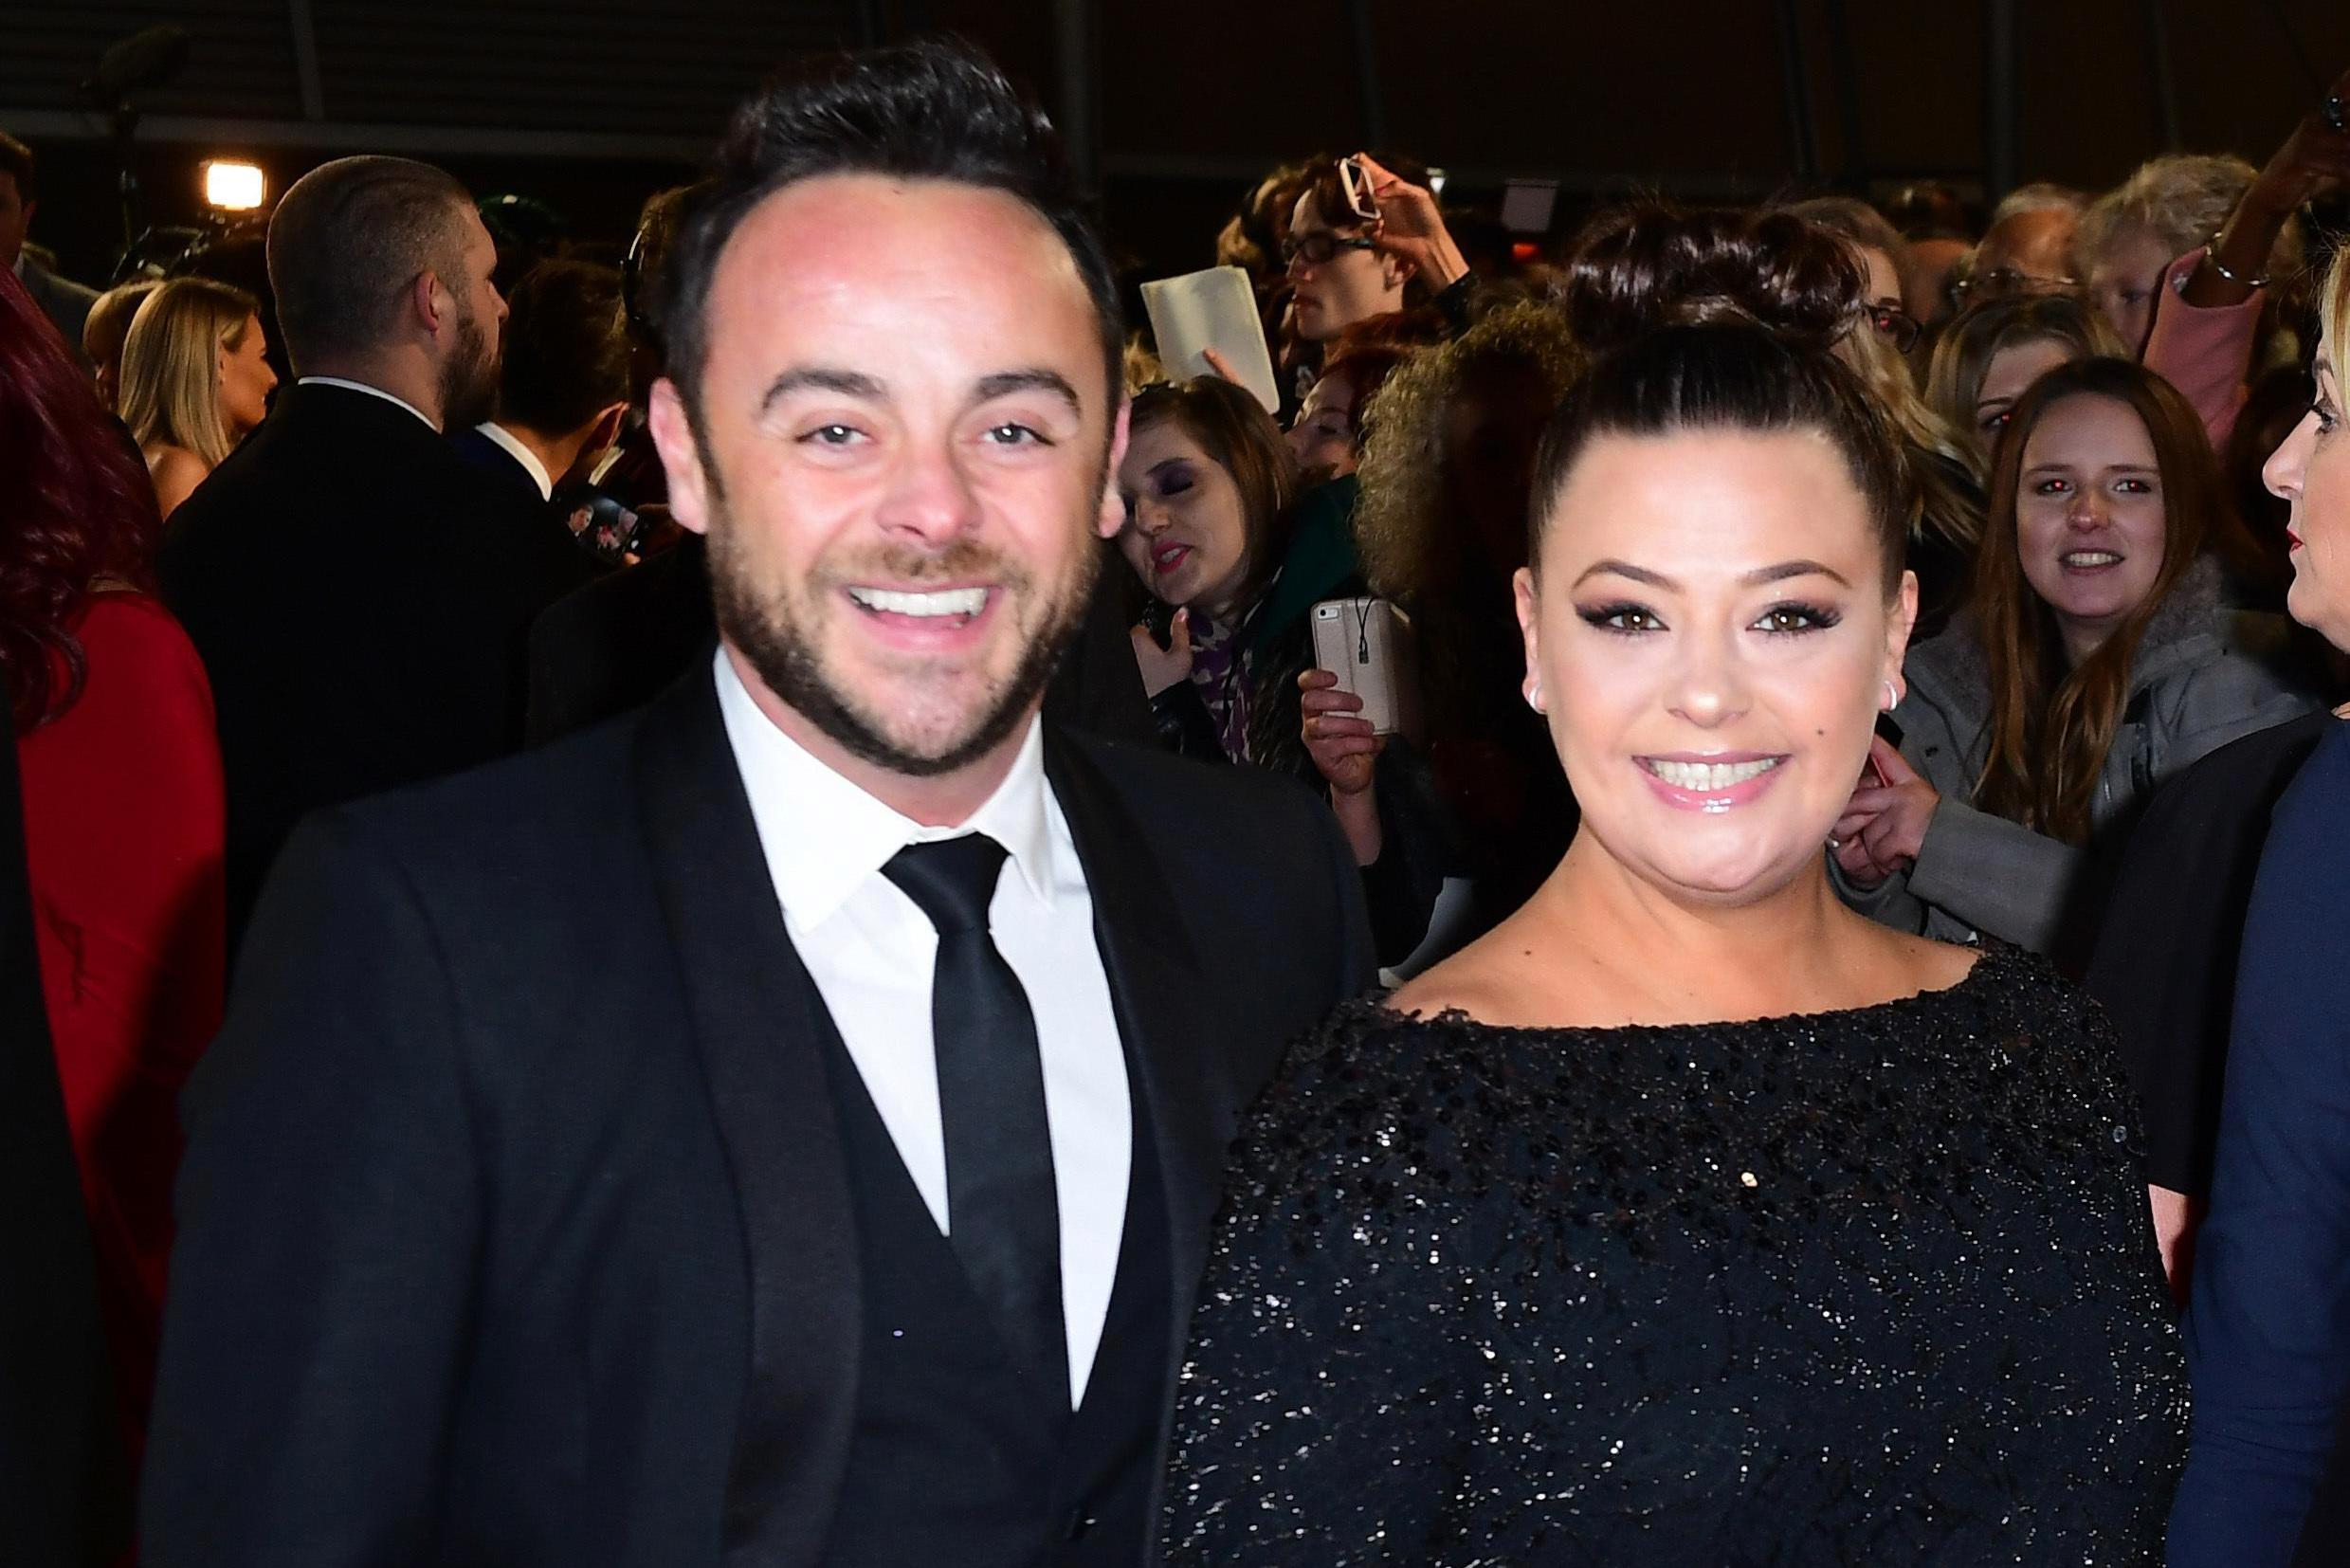 Lisa Armstrong 'axed from Britain's Got Talent' as working with ex Ant McPartlin had become 'untenable'